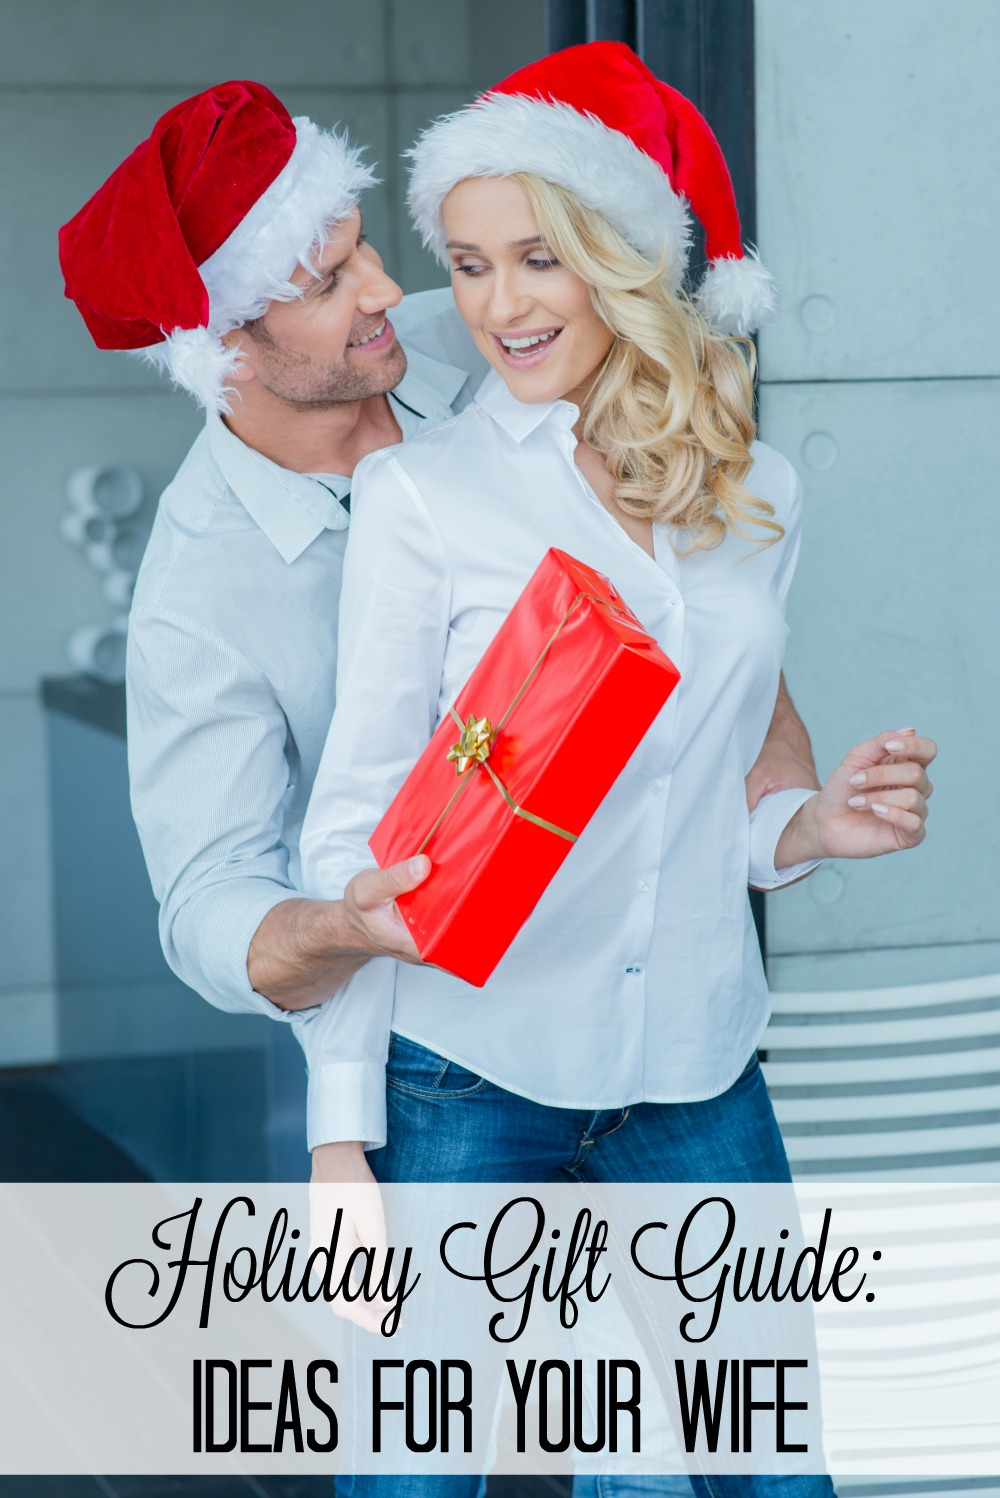 Holiday gift guide ideas for the wife mom fabulous Christmas presents for wife